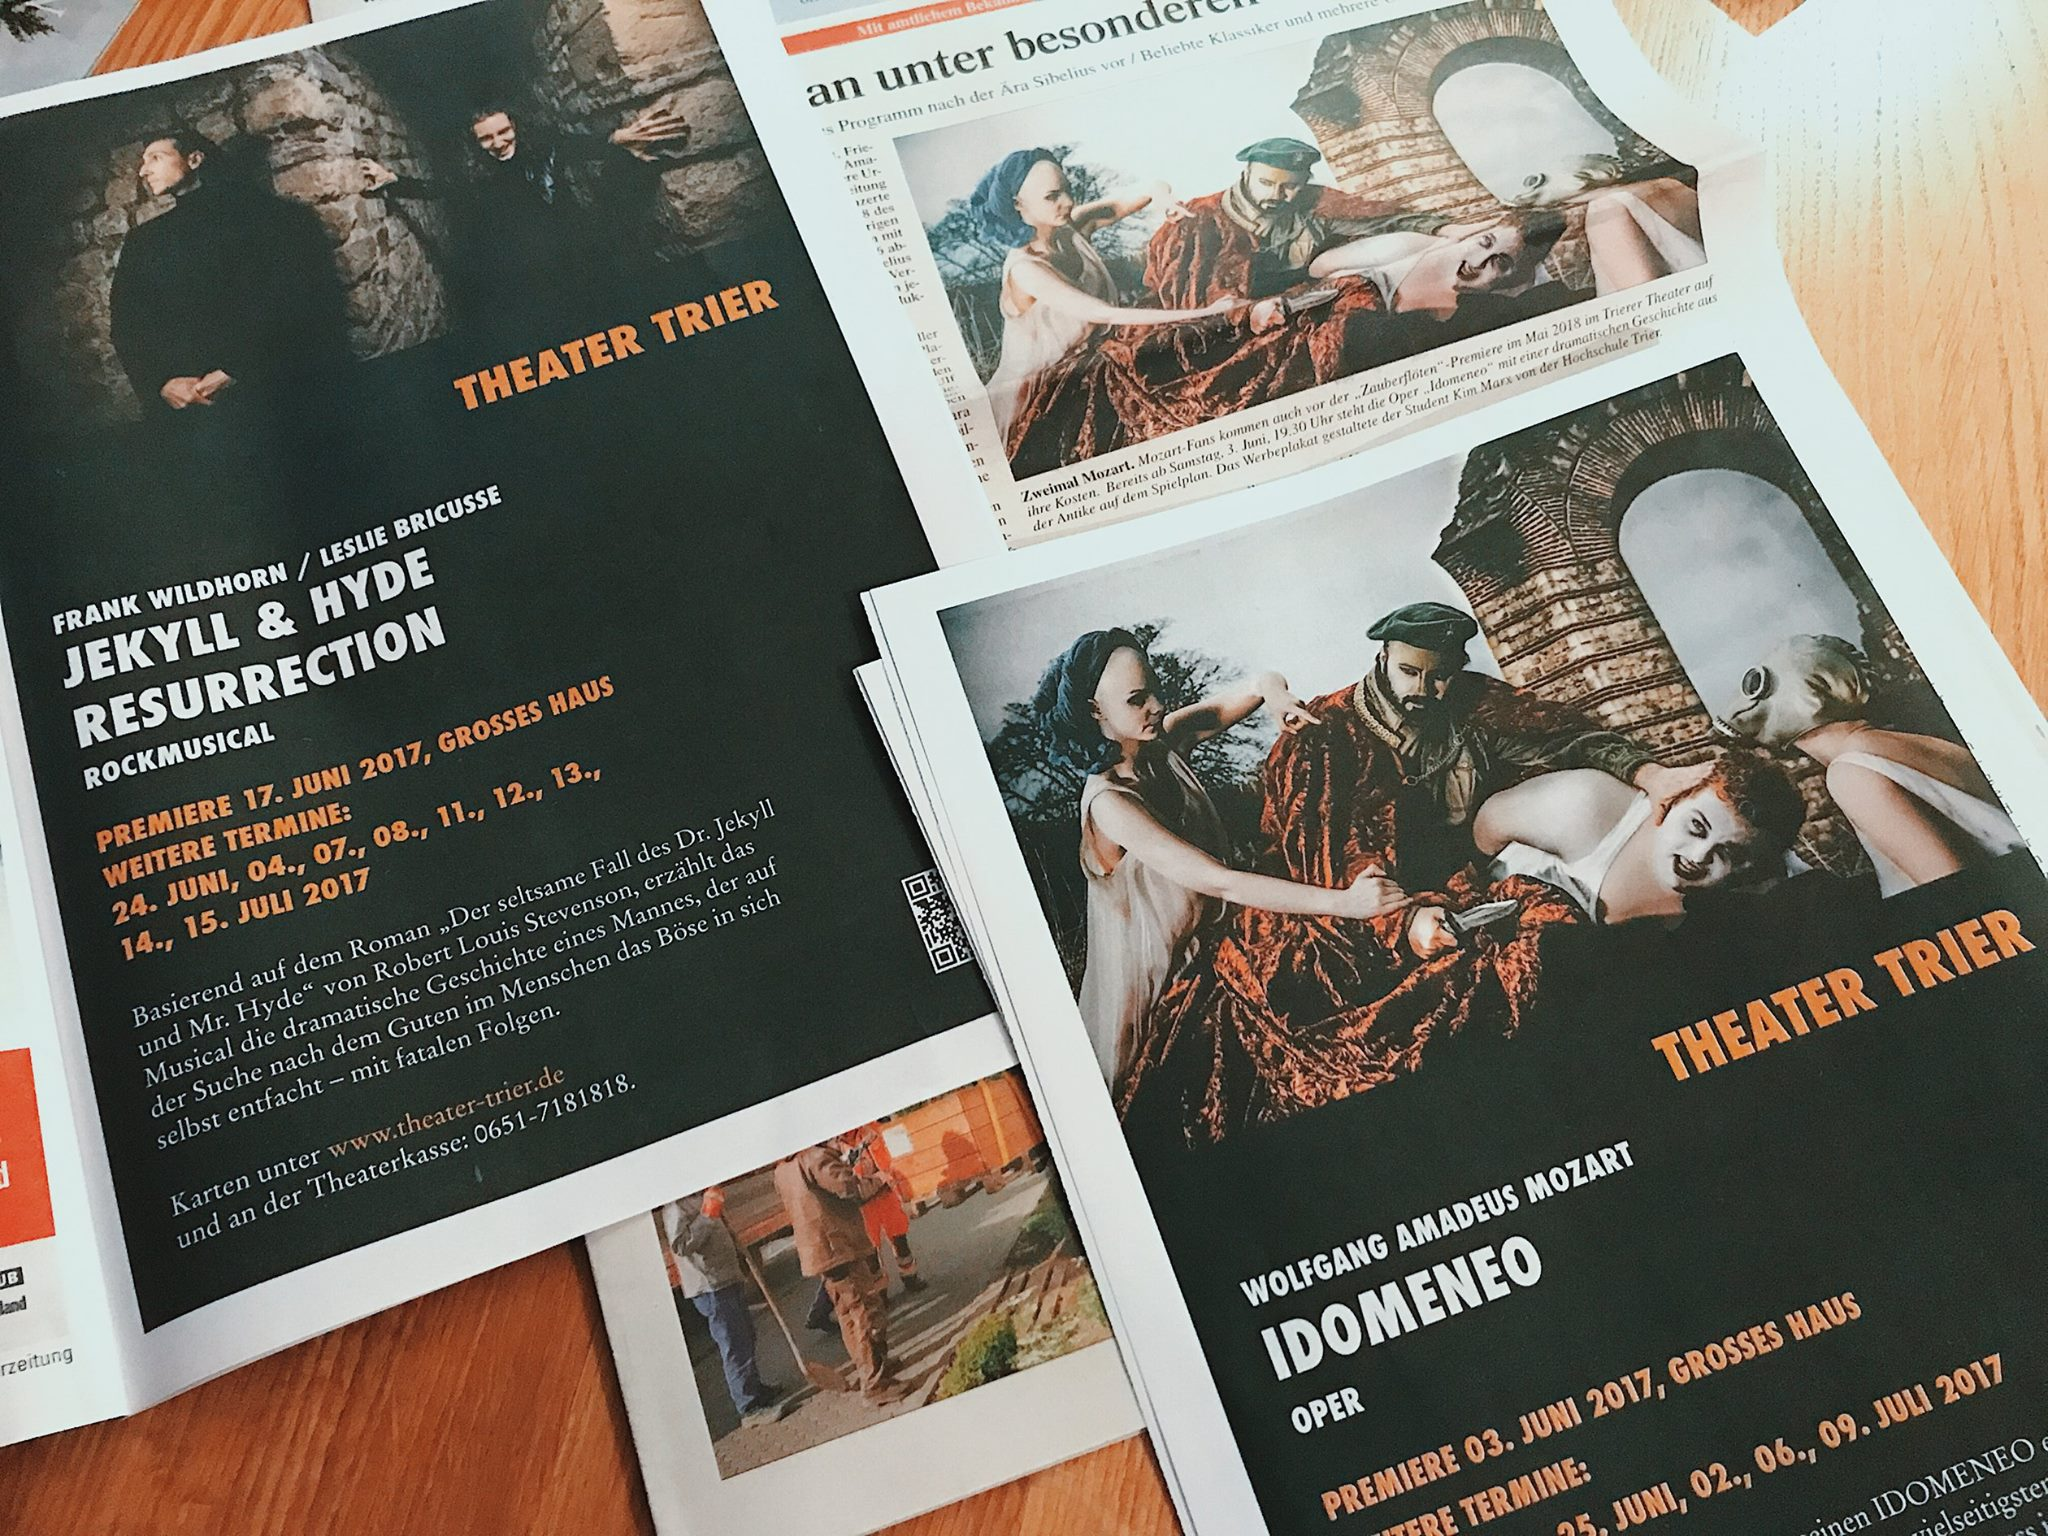 Idomeneo in the press along with Dr. Jekyll & Hyde resurrection - (Layout design (Ensch-Media)